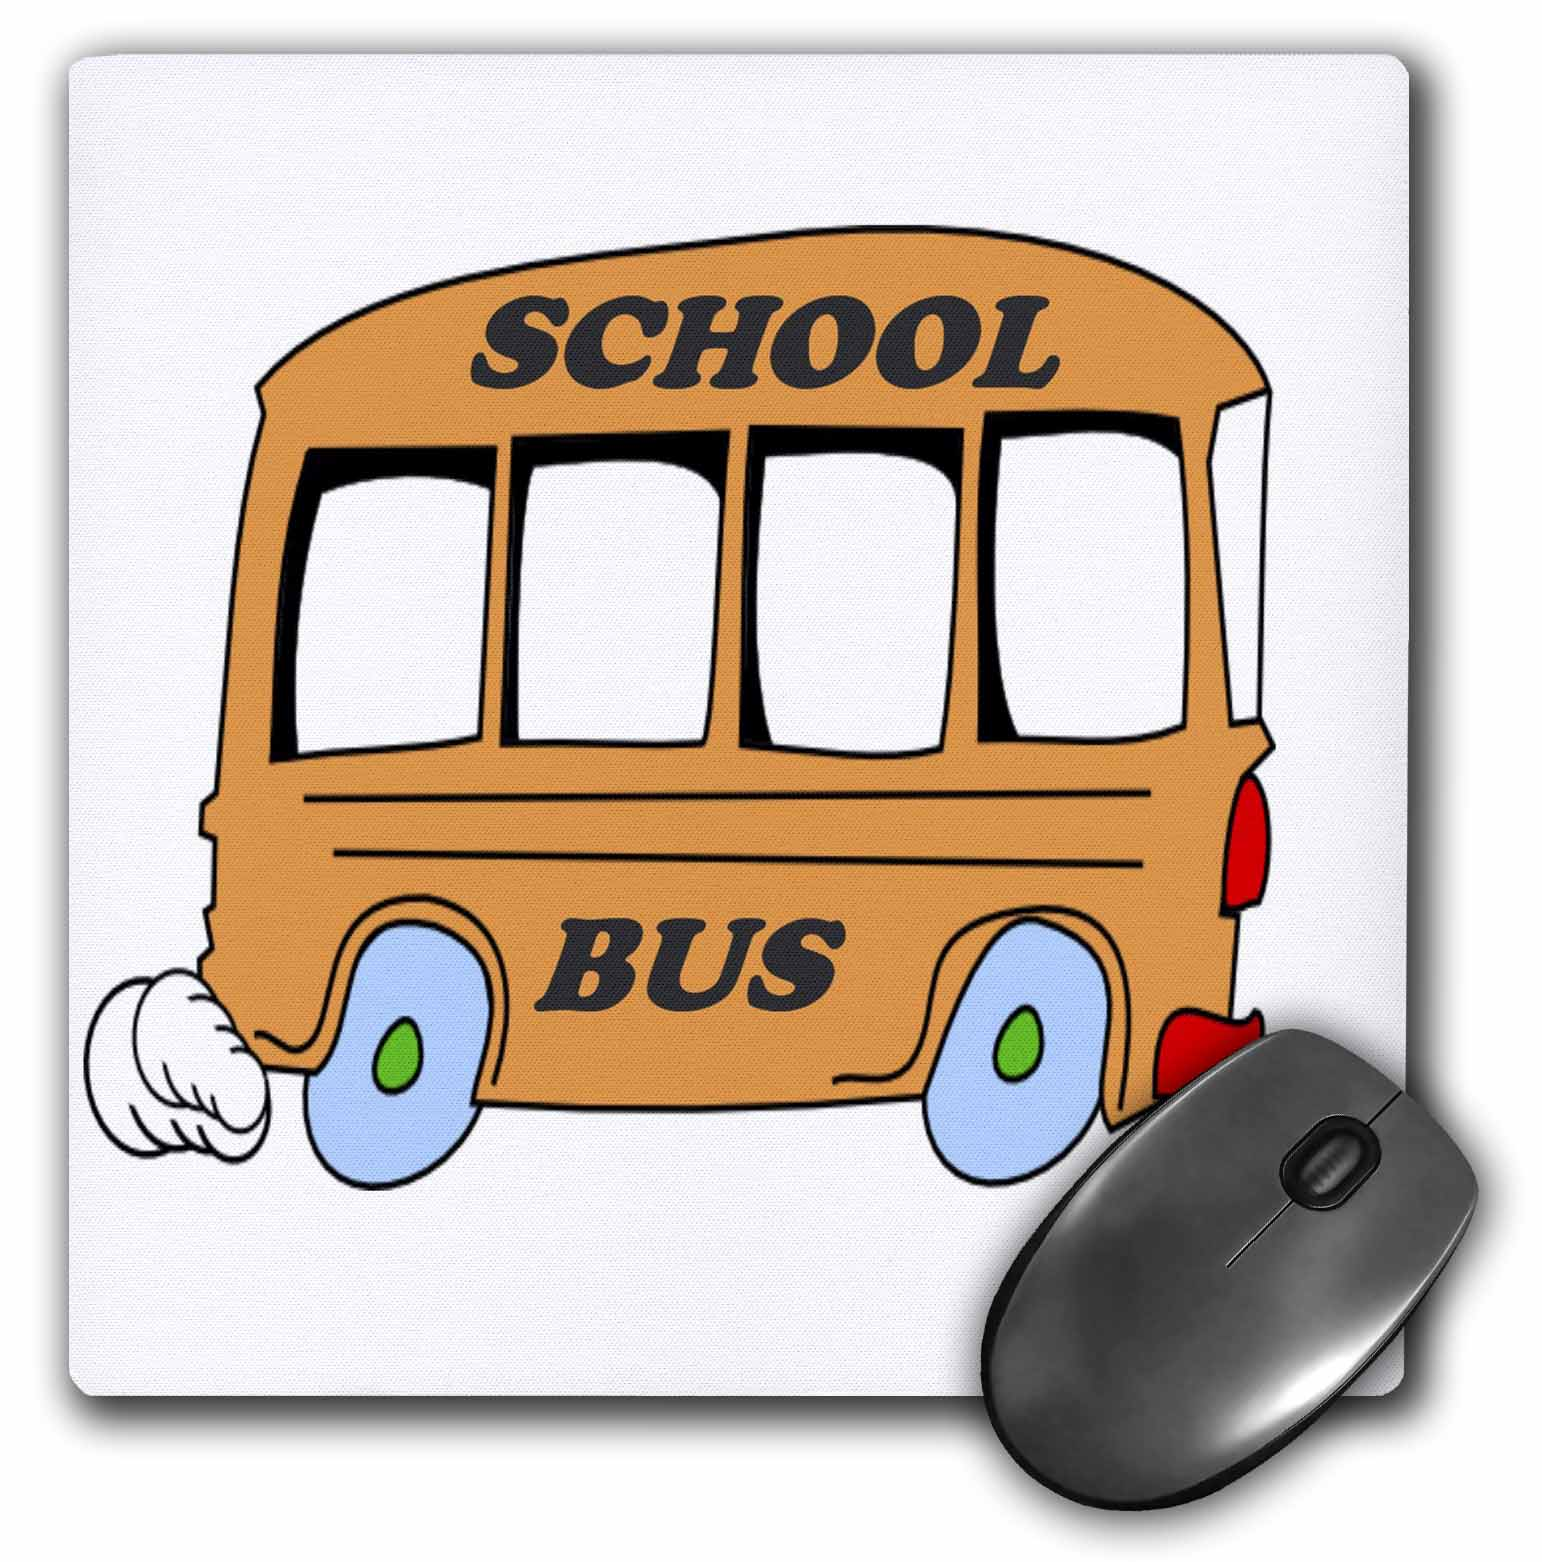 3dRose Orange School Bus, Mouse Pad, 8 by 8 inches